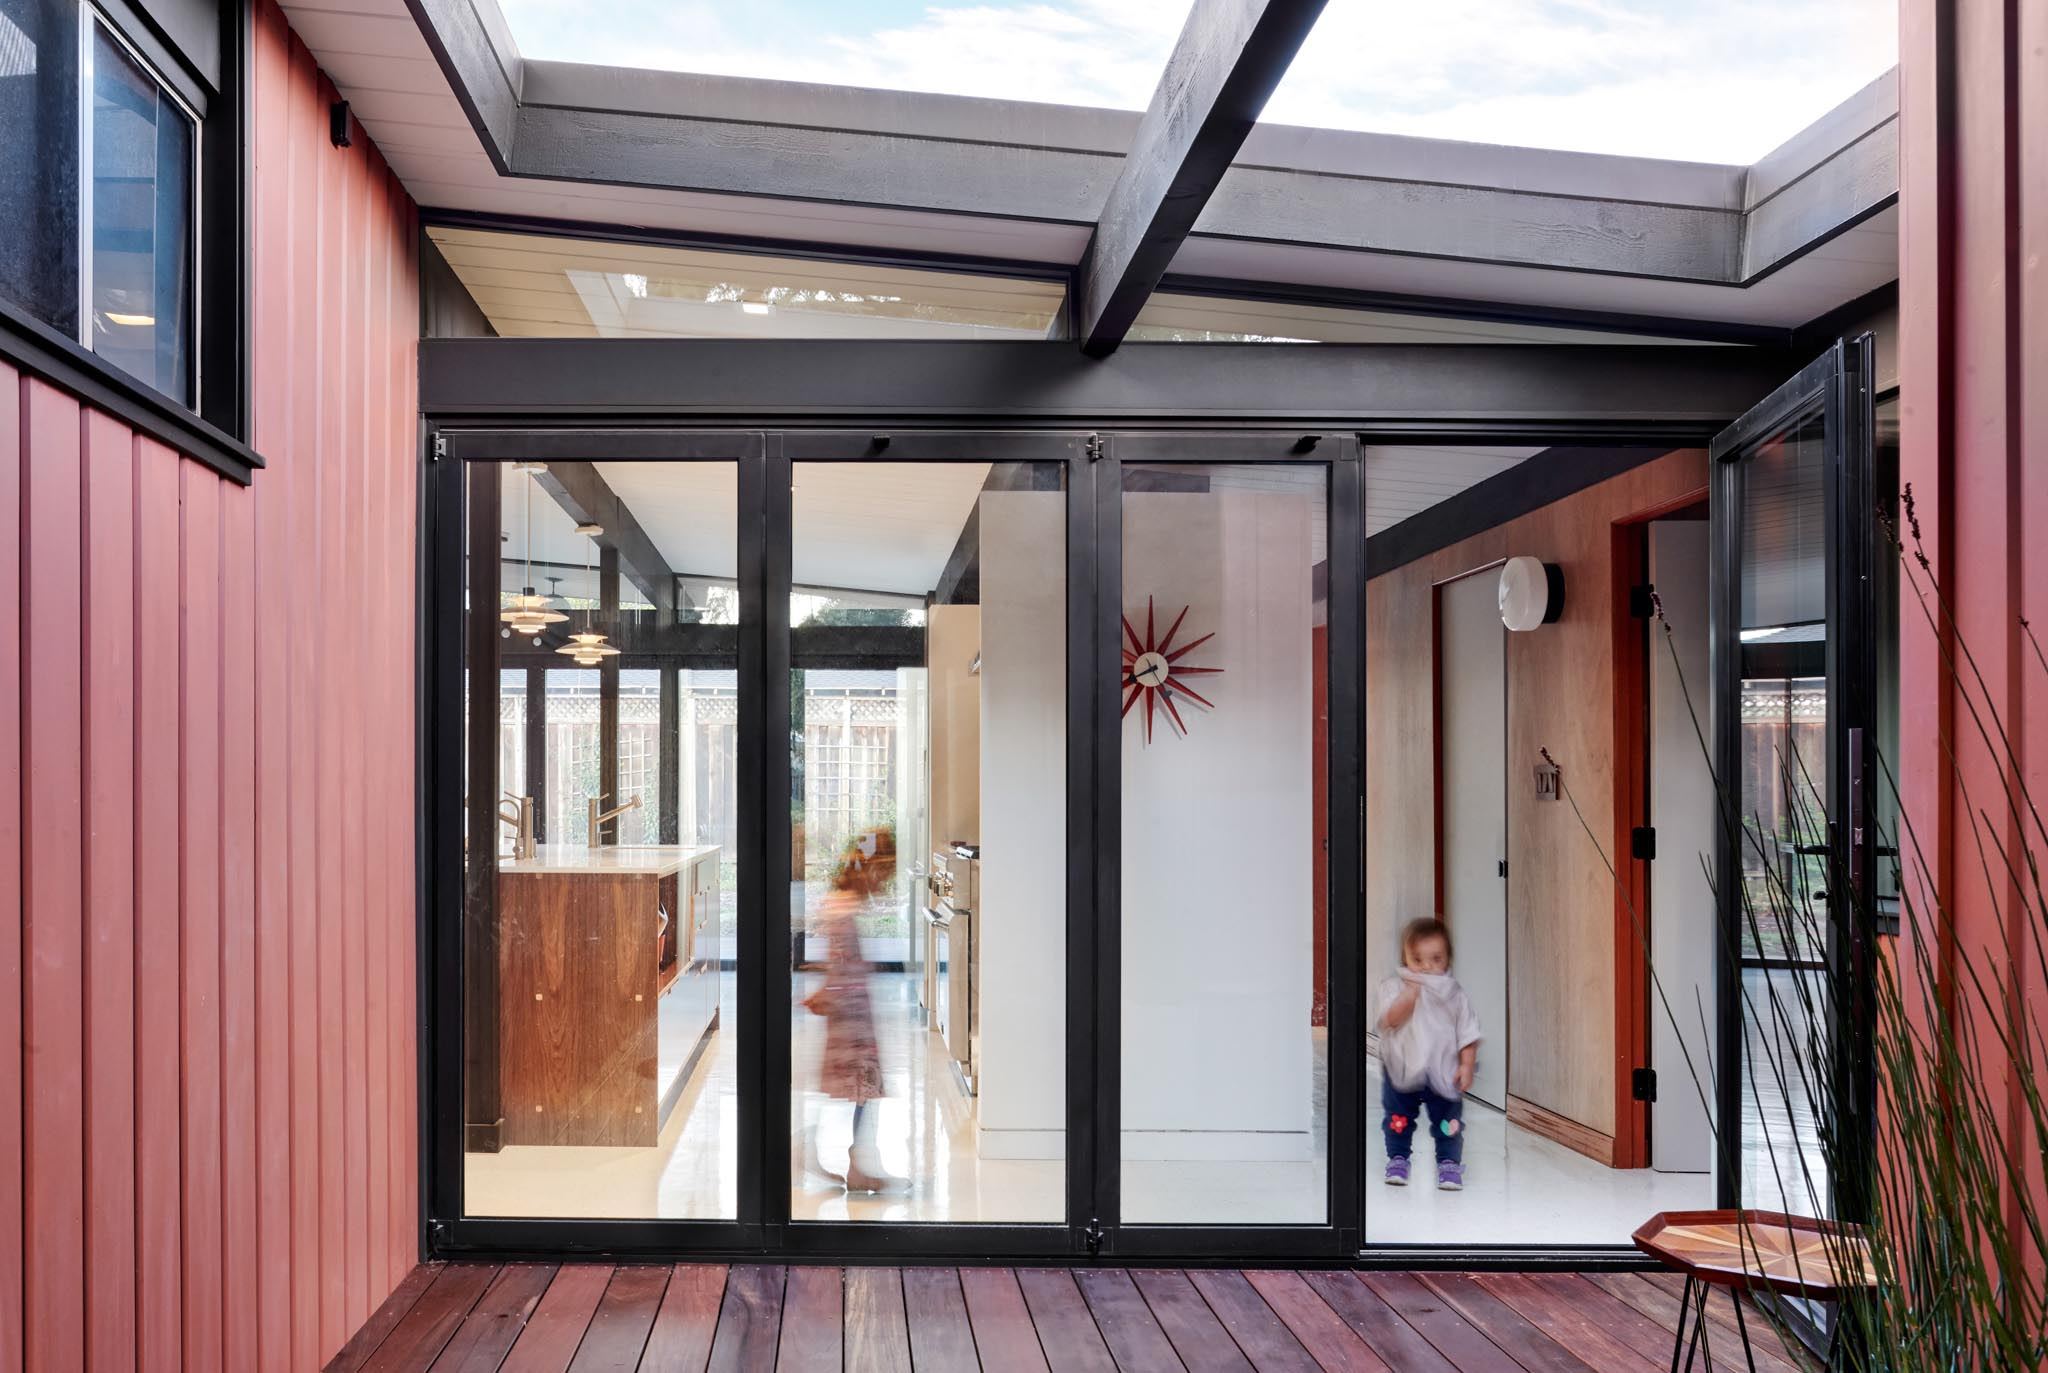 folding glass wall in Eichler remodel to connect home to courtyard